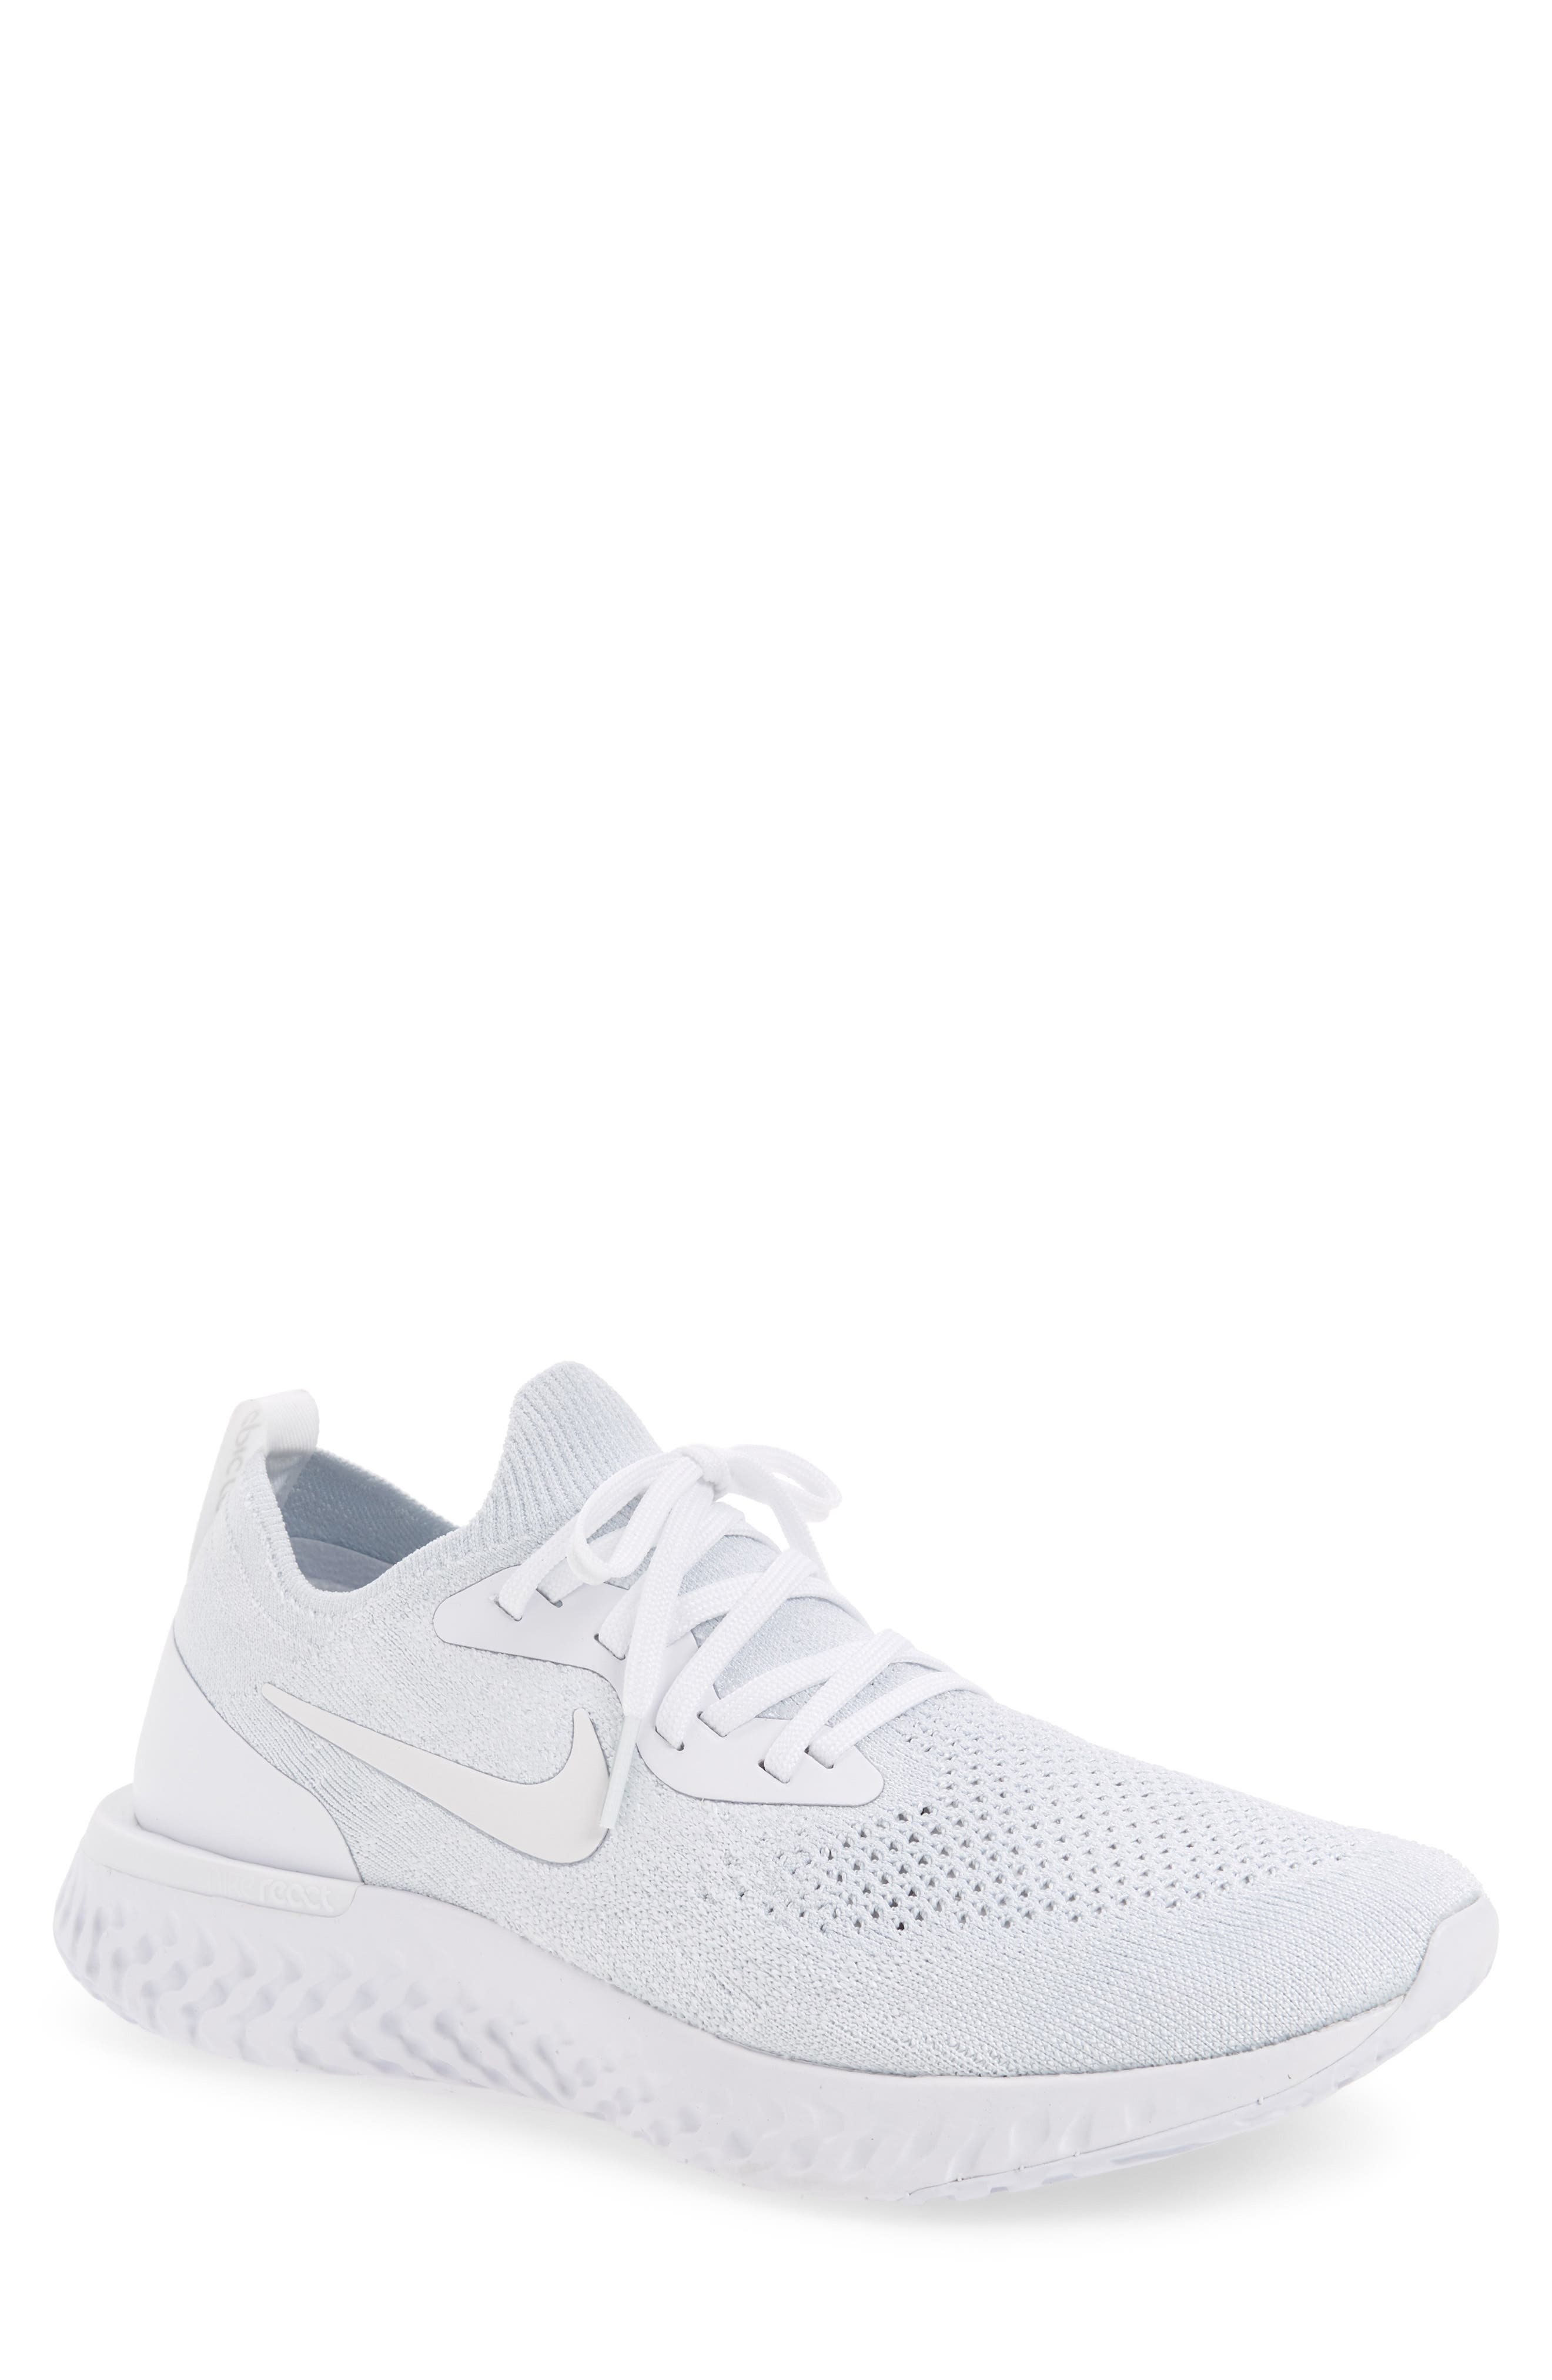 Epic React Flyknit Running Shoe,                         Main,                         color, White